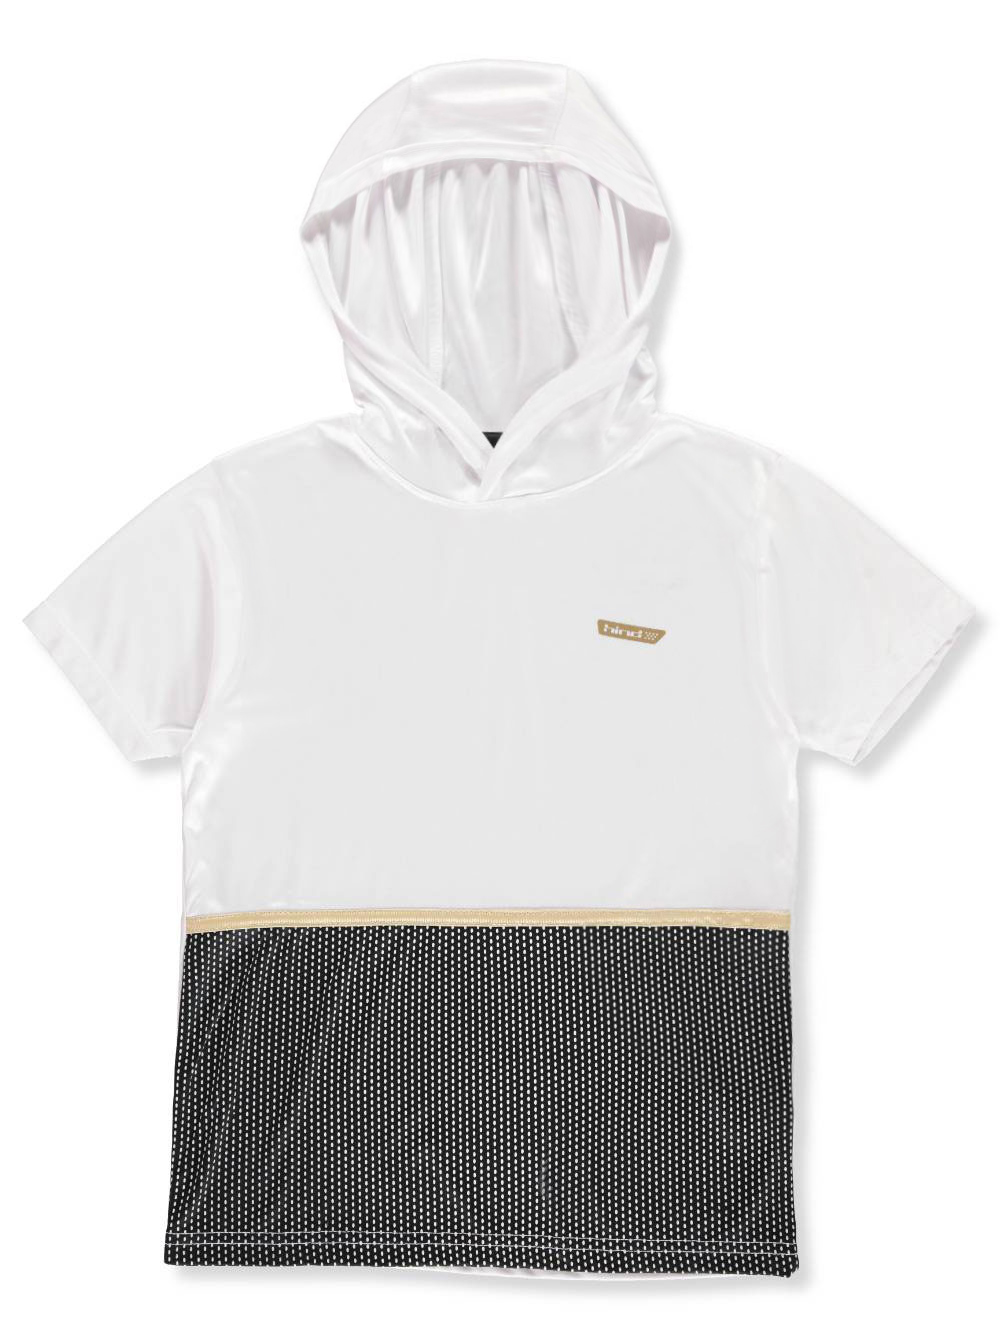 40fd8b800 Boys' Hooded Performance Top by Hind in White from Cookie's Kids